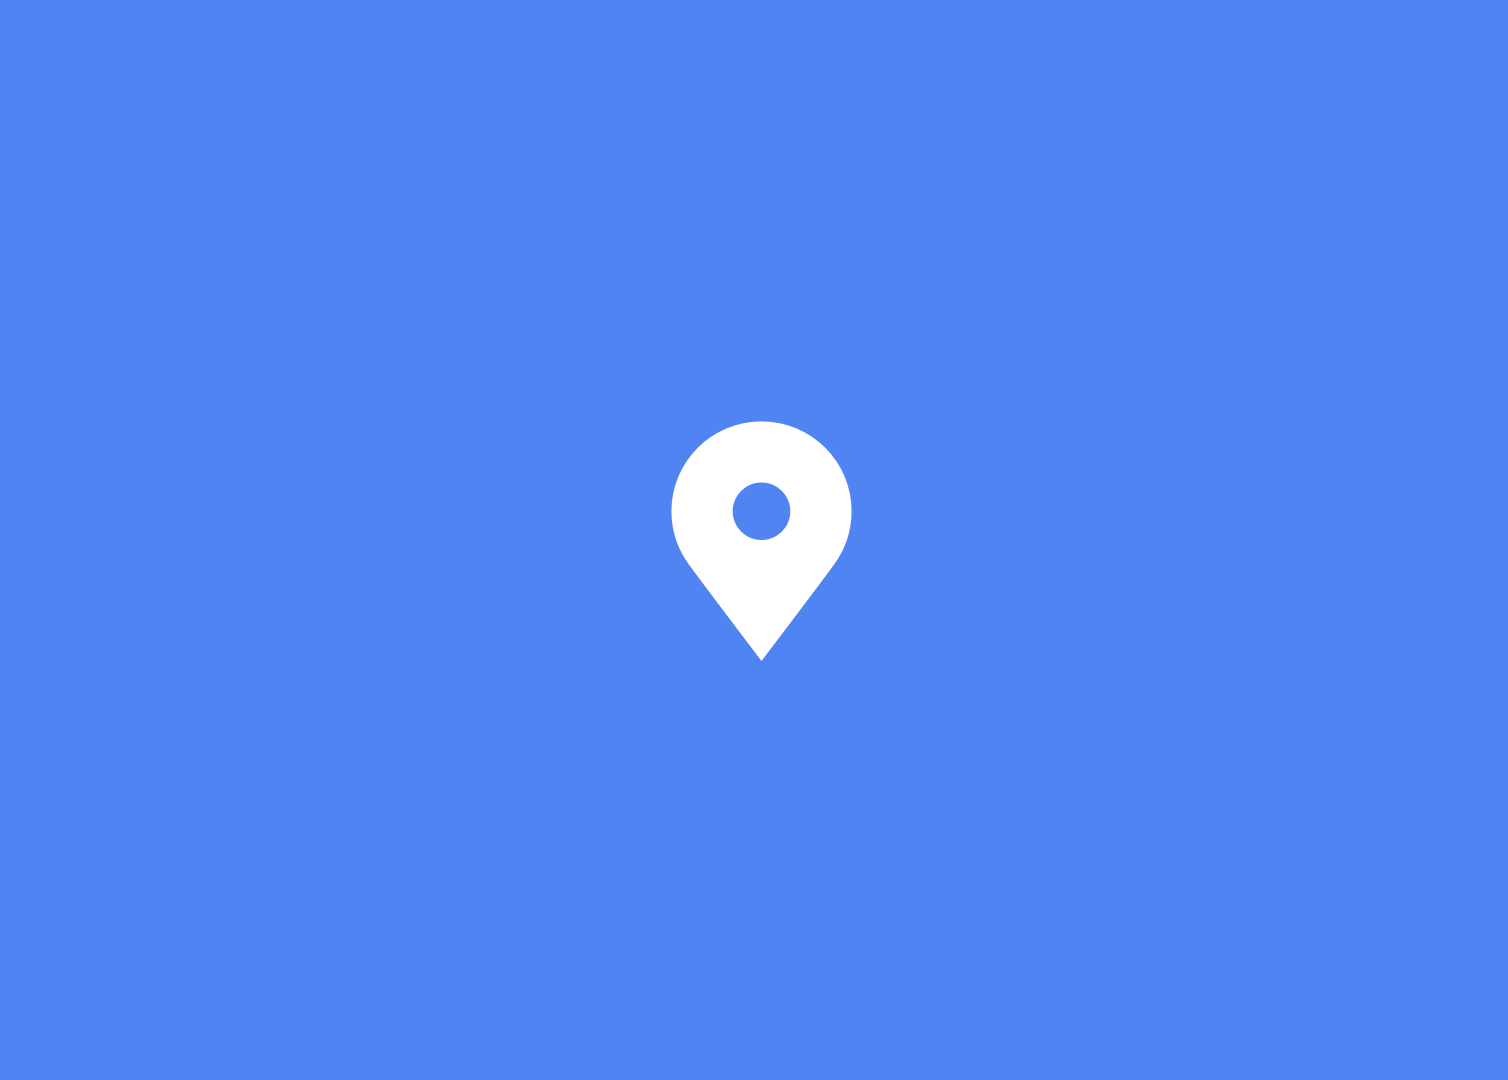 Understanding Updates to Your Device's Location Settings